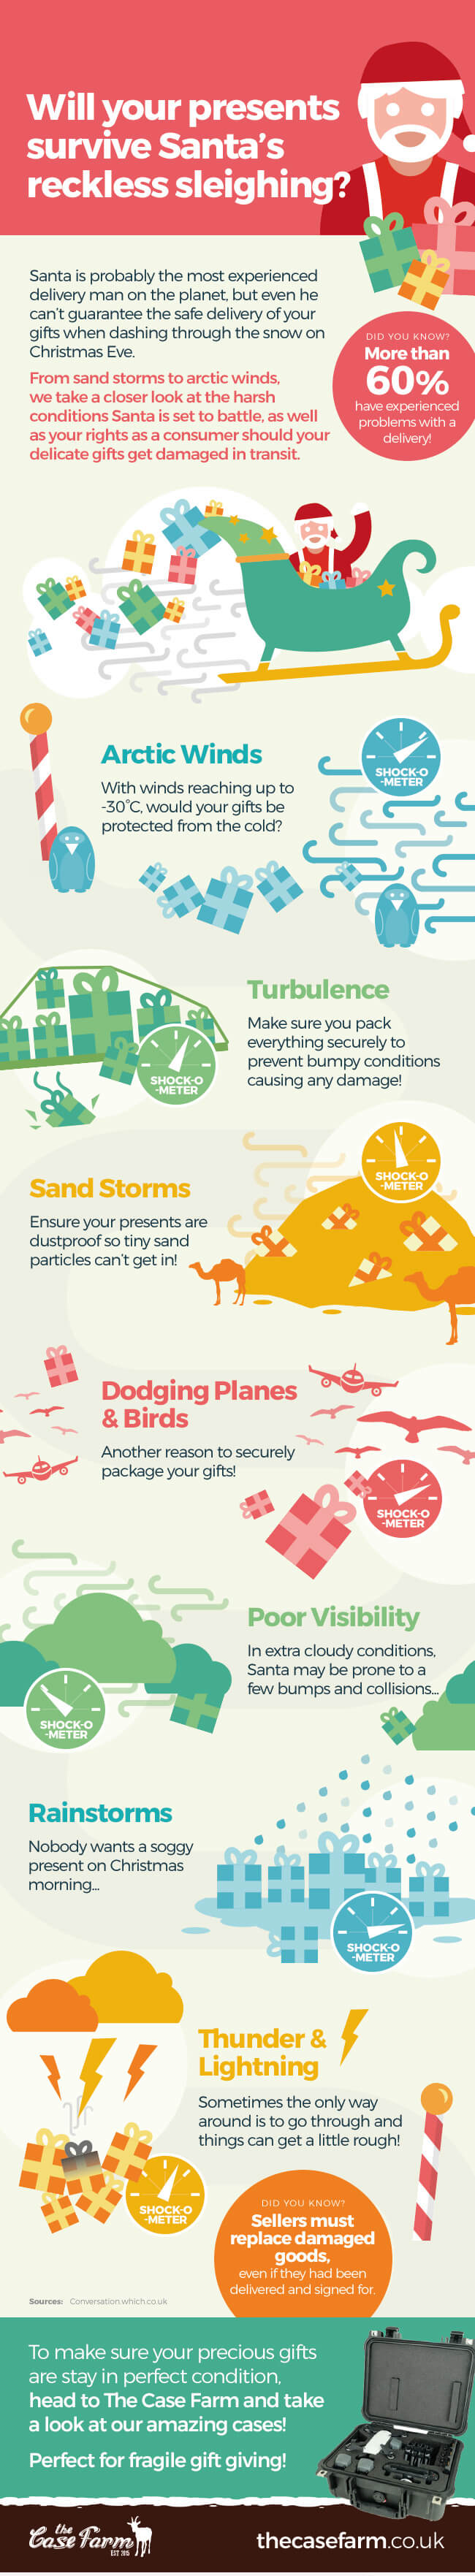 The Case Farm Reckless Sleighing Infographic